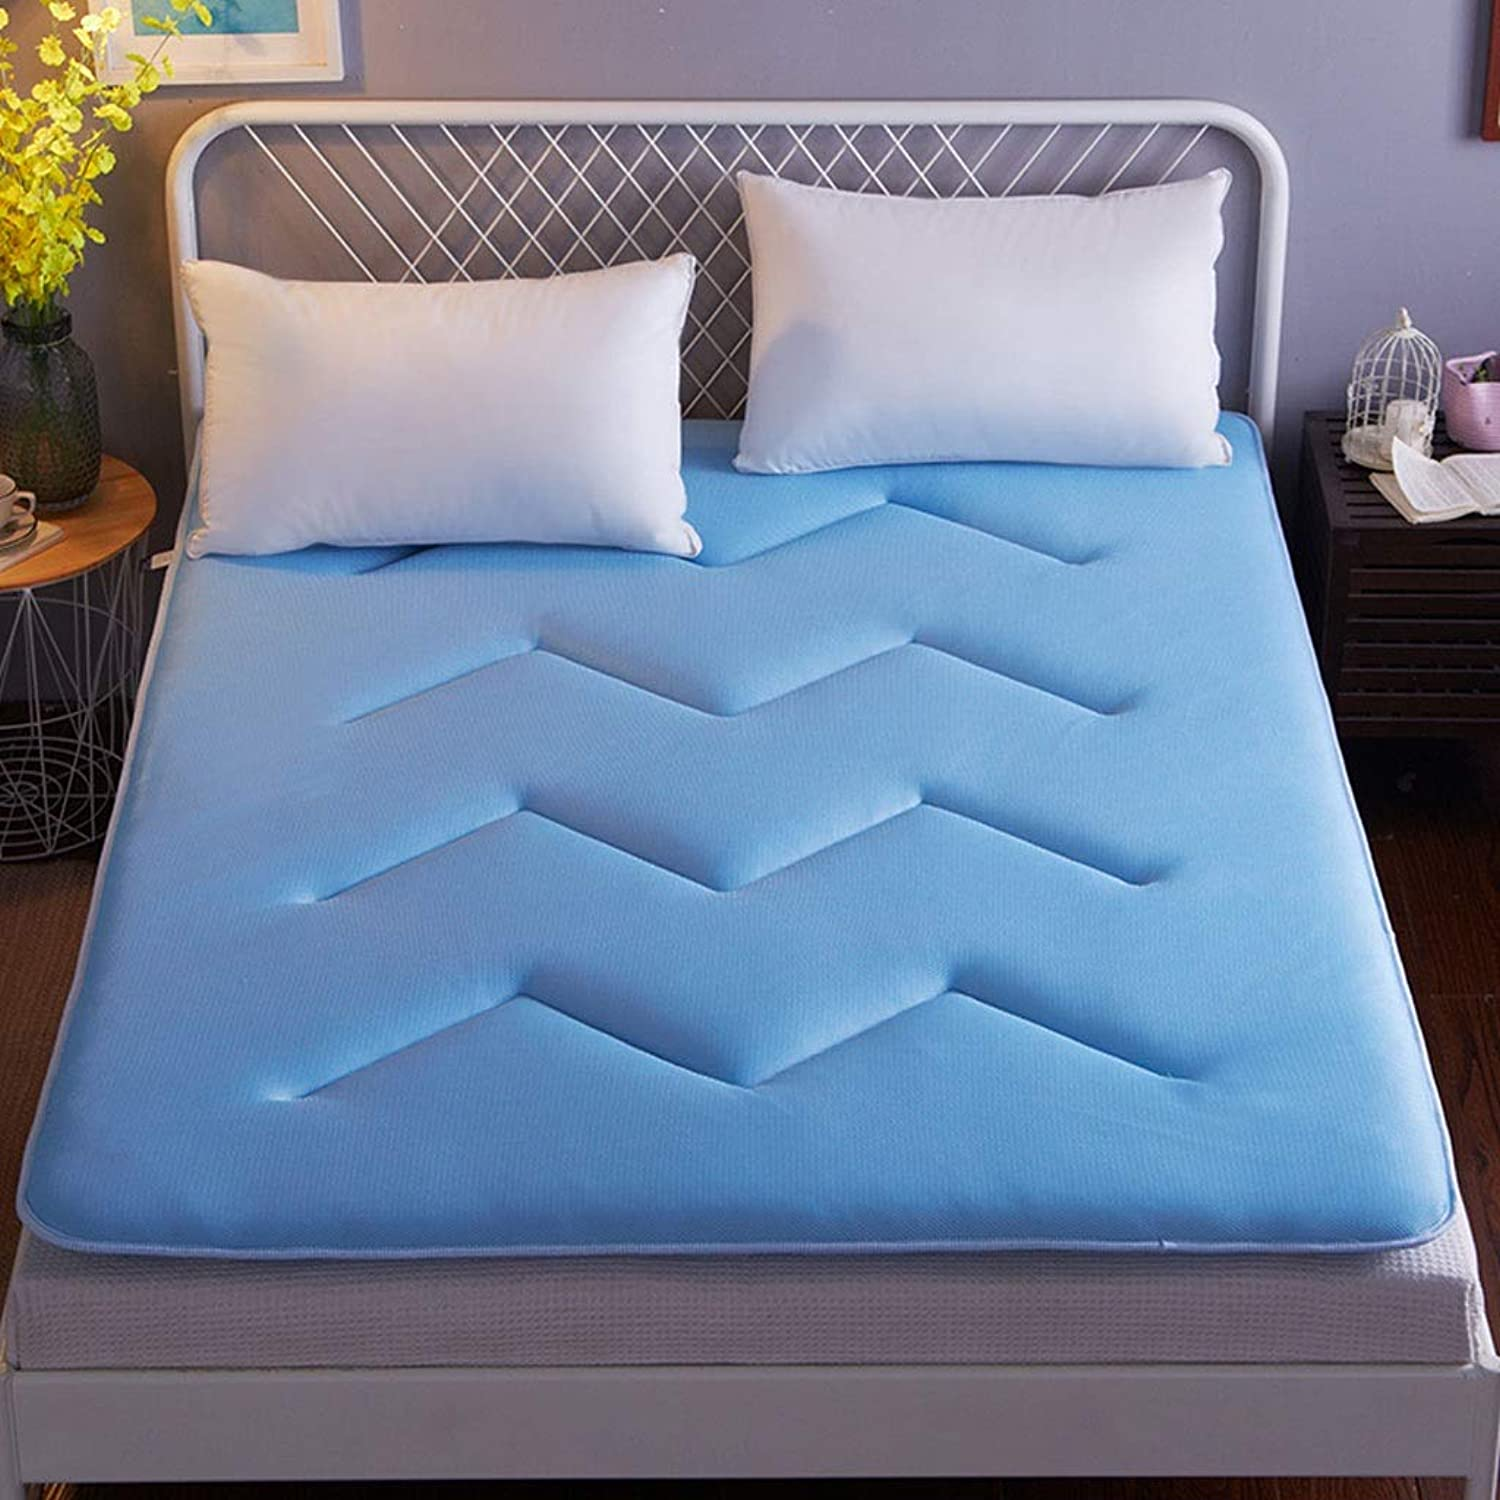 3D Breathable Mattress Tatami Sleeping Mat Home Student Dormitory to Play The Floor Soft and Comfortable Moisture Mat Can Be Washed (color   bluee, Size   120X200cm)